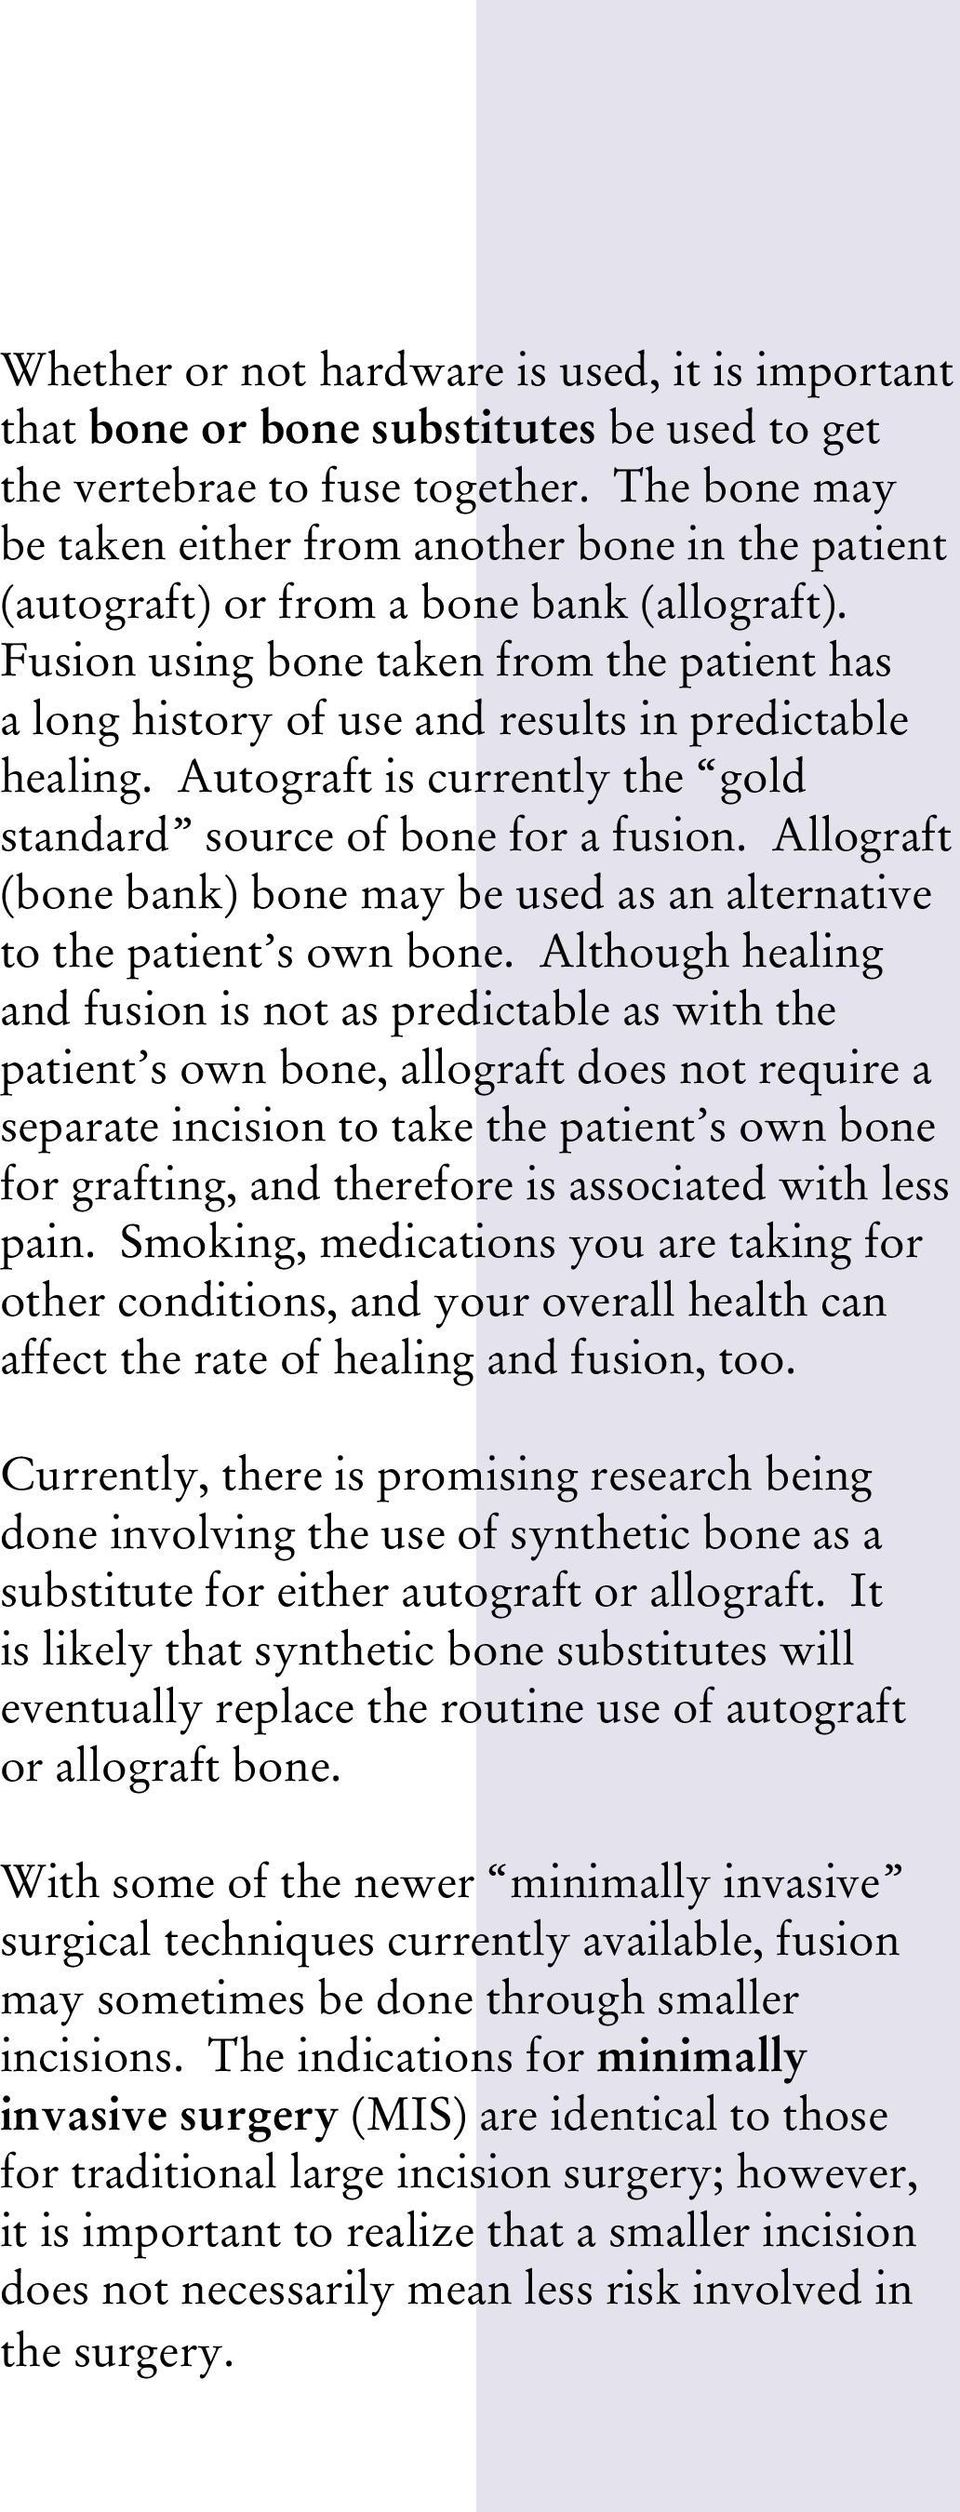 Fusion using bone taken from the patient has a long history of use and results in predictable healing. Autograft is currently the gold standard source of bone for a fusion.